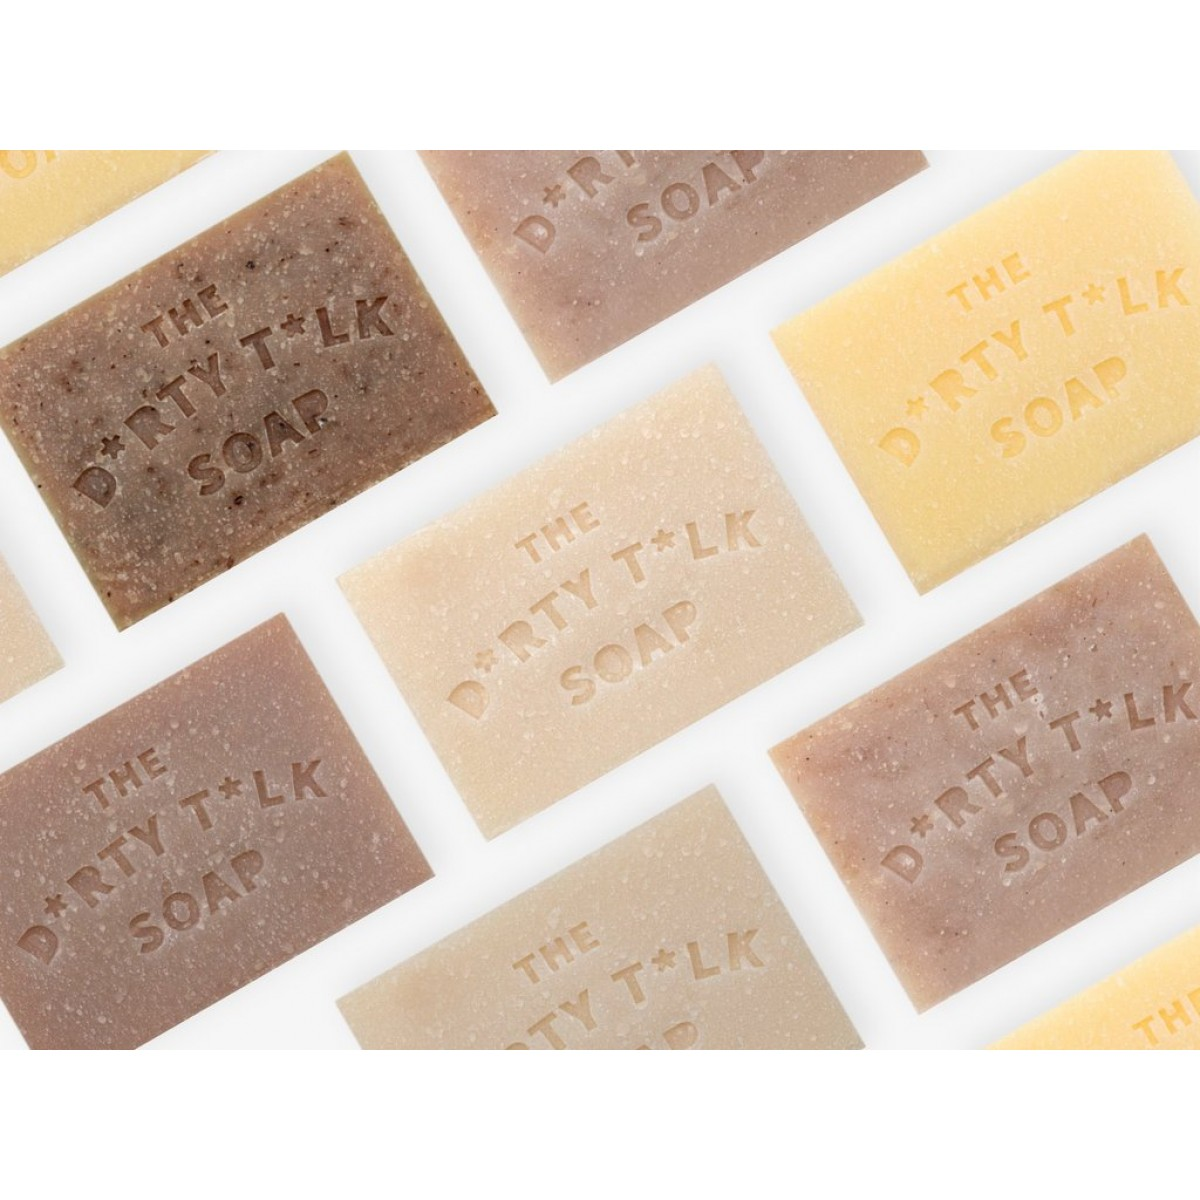 typealive / THE D*RTY T*LK SOAP / Mach Mich Feucht